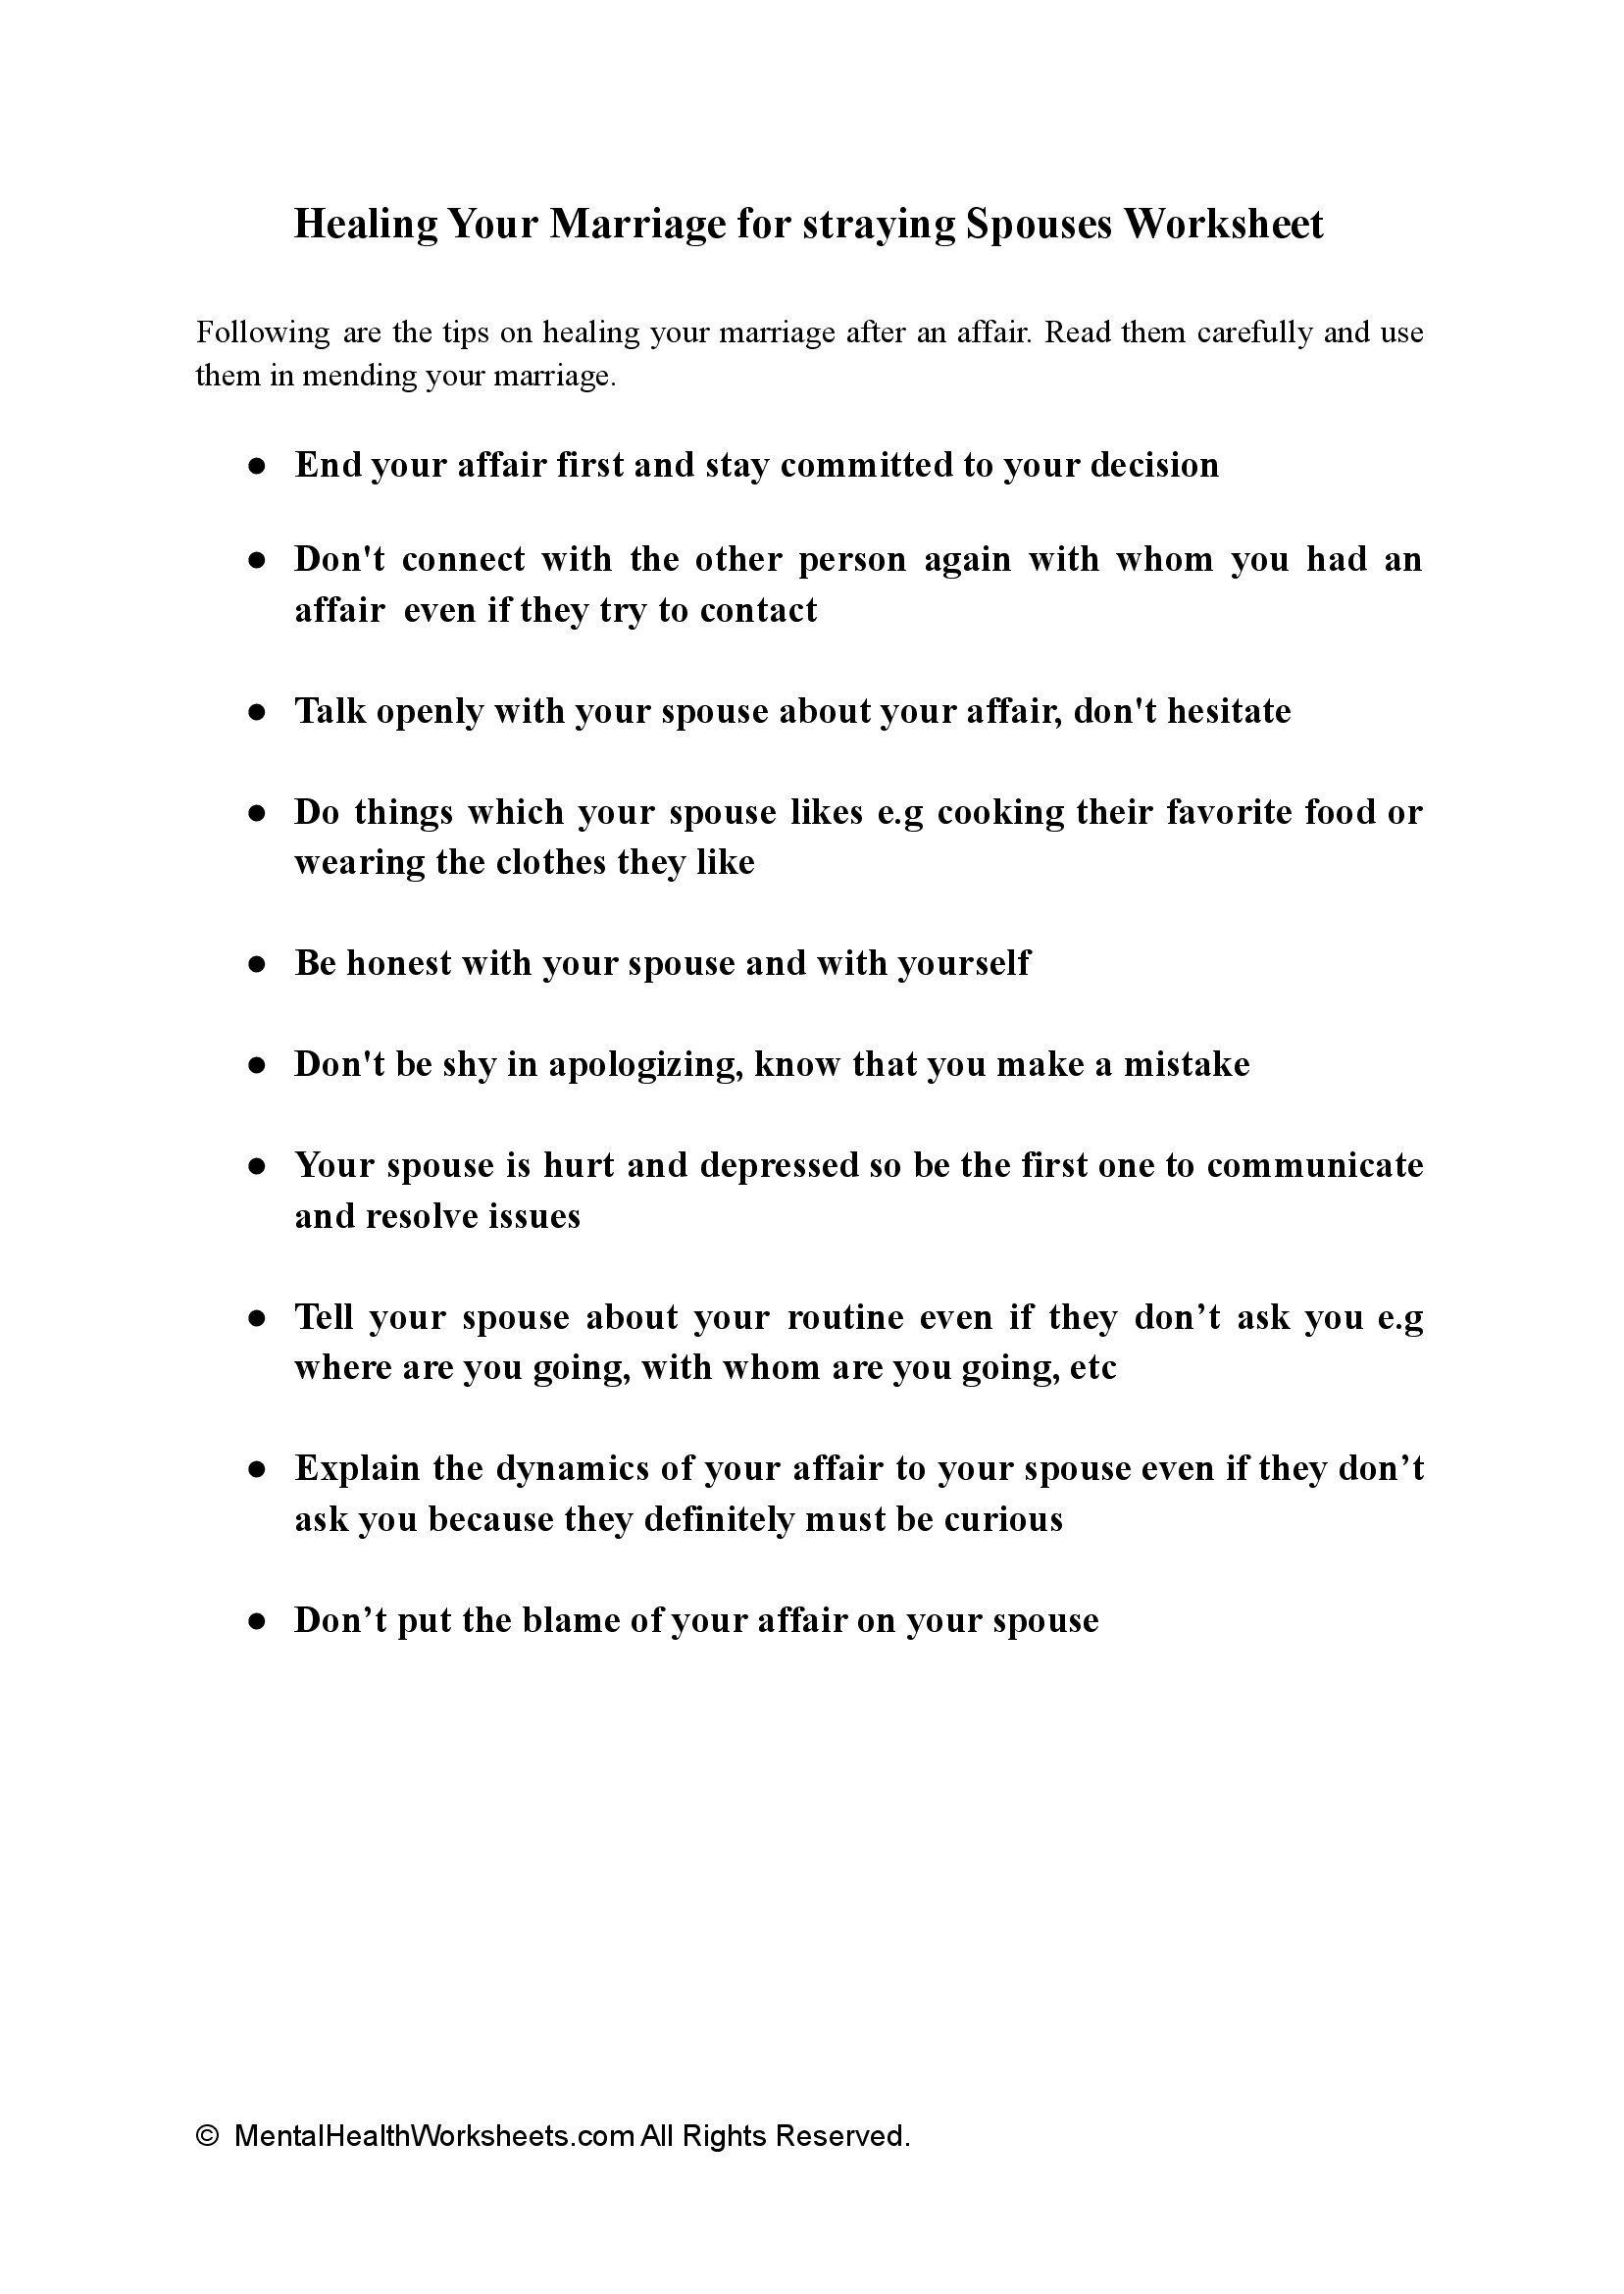 Healing Your Marriage for straying Spouses Worksheet